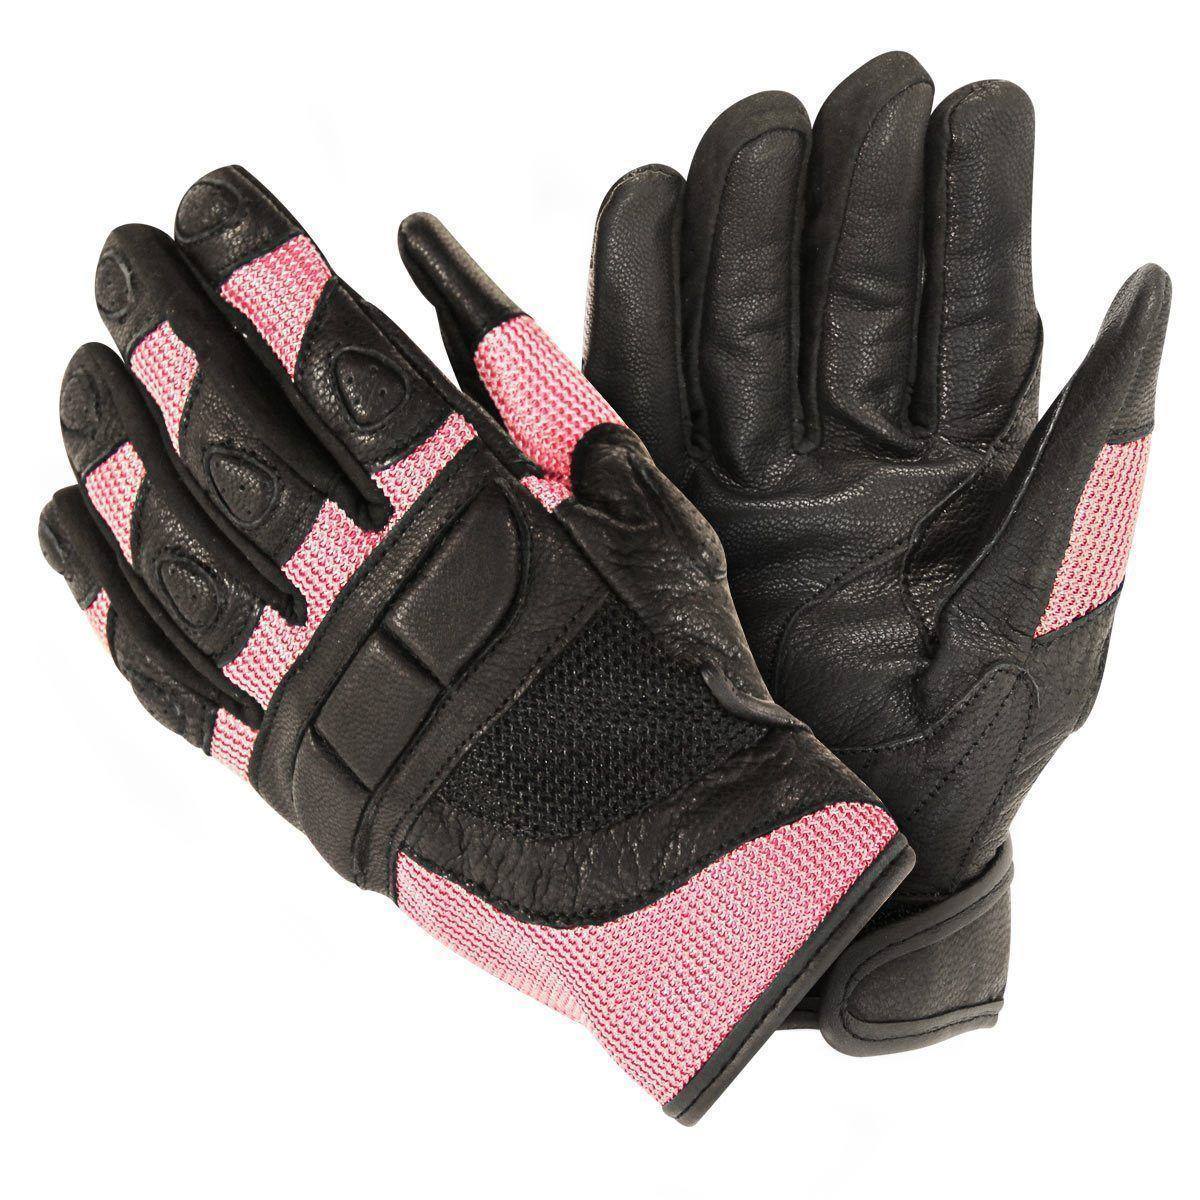 Xelement XG80206 Women's Black and Pink Mesh Cool Rider Motorcycle